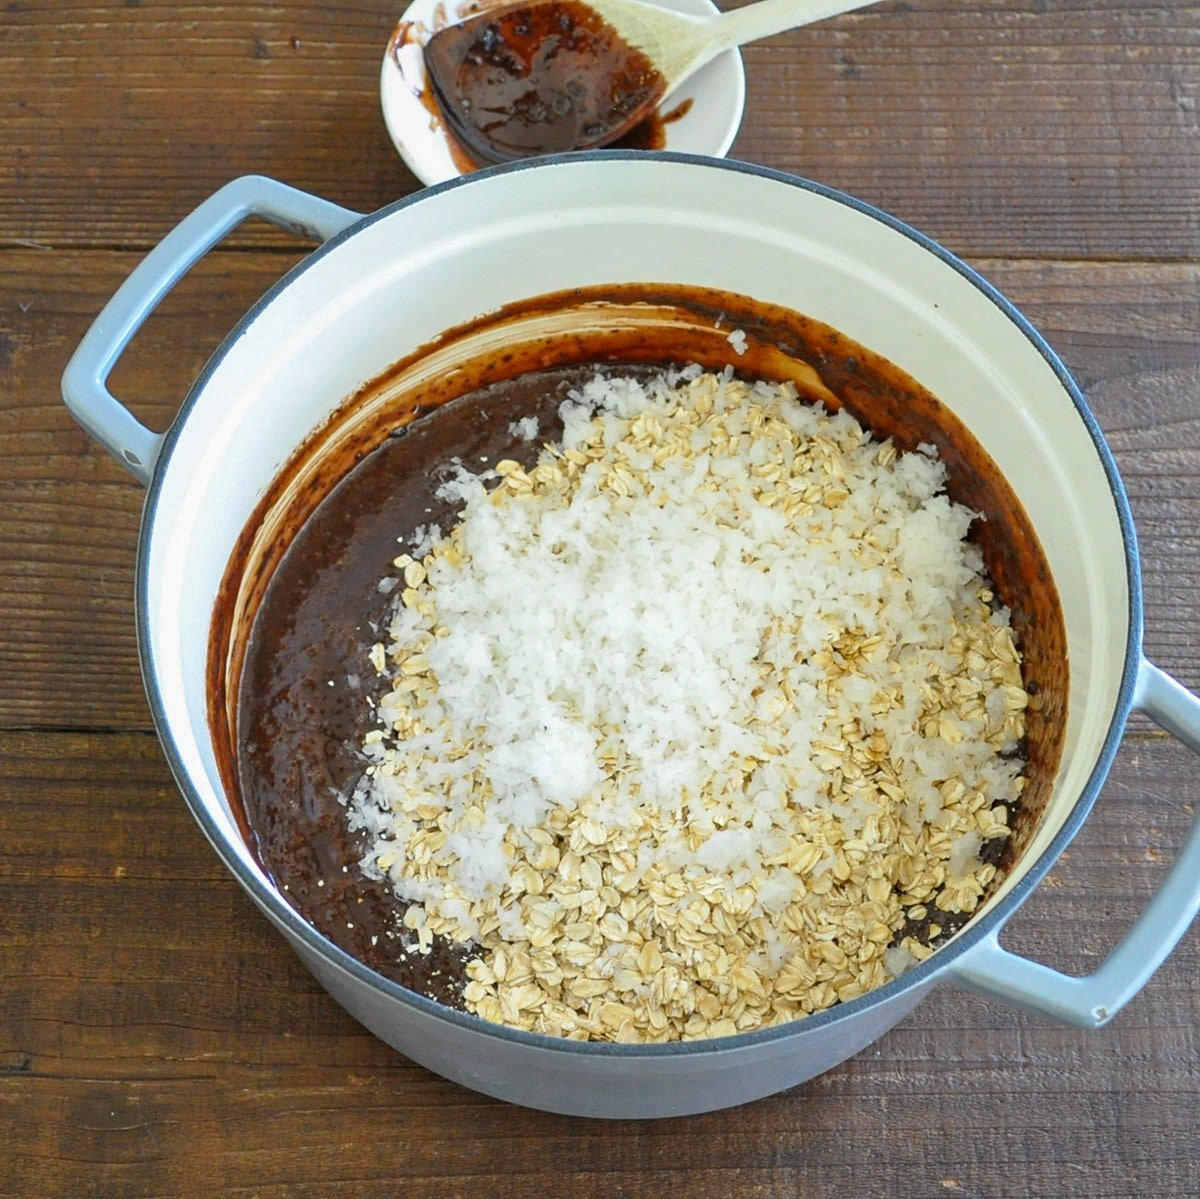 Oatmeal, coconut, and vanilla added to a cocoa, milk, butter and sugar cookie base in a large pan